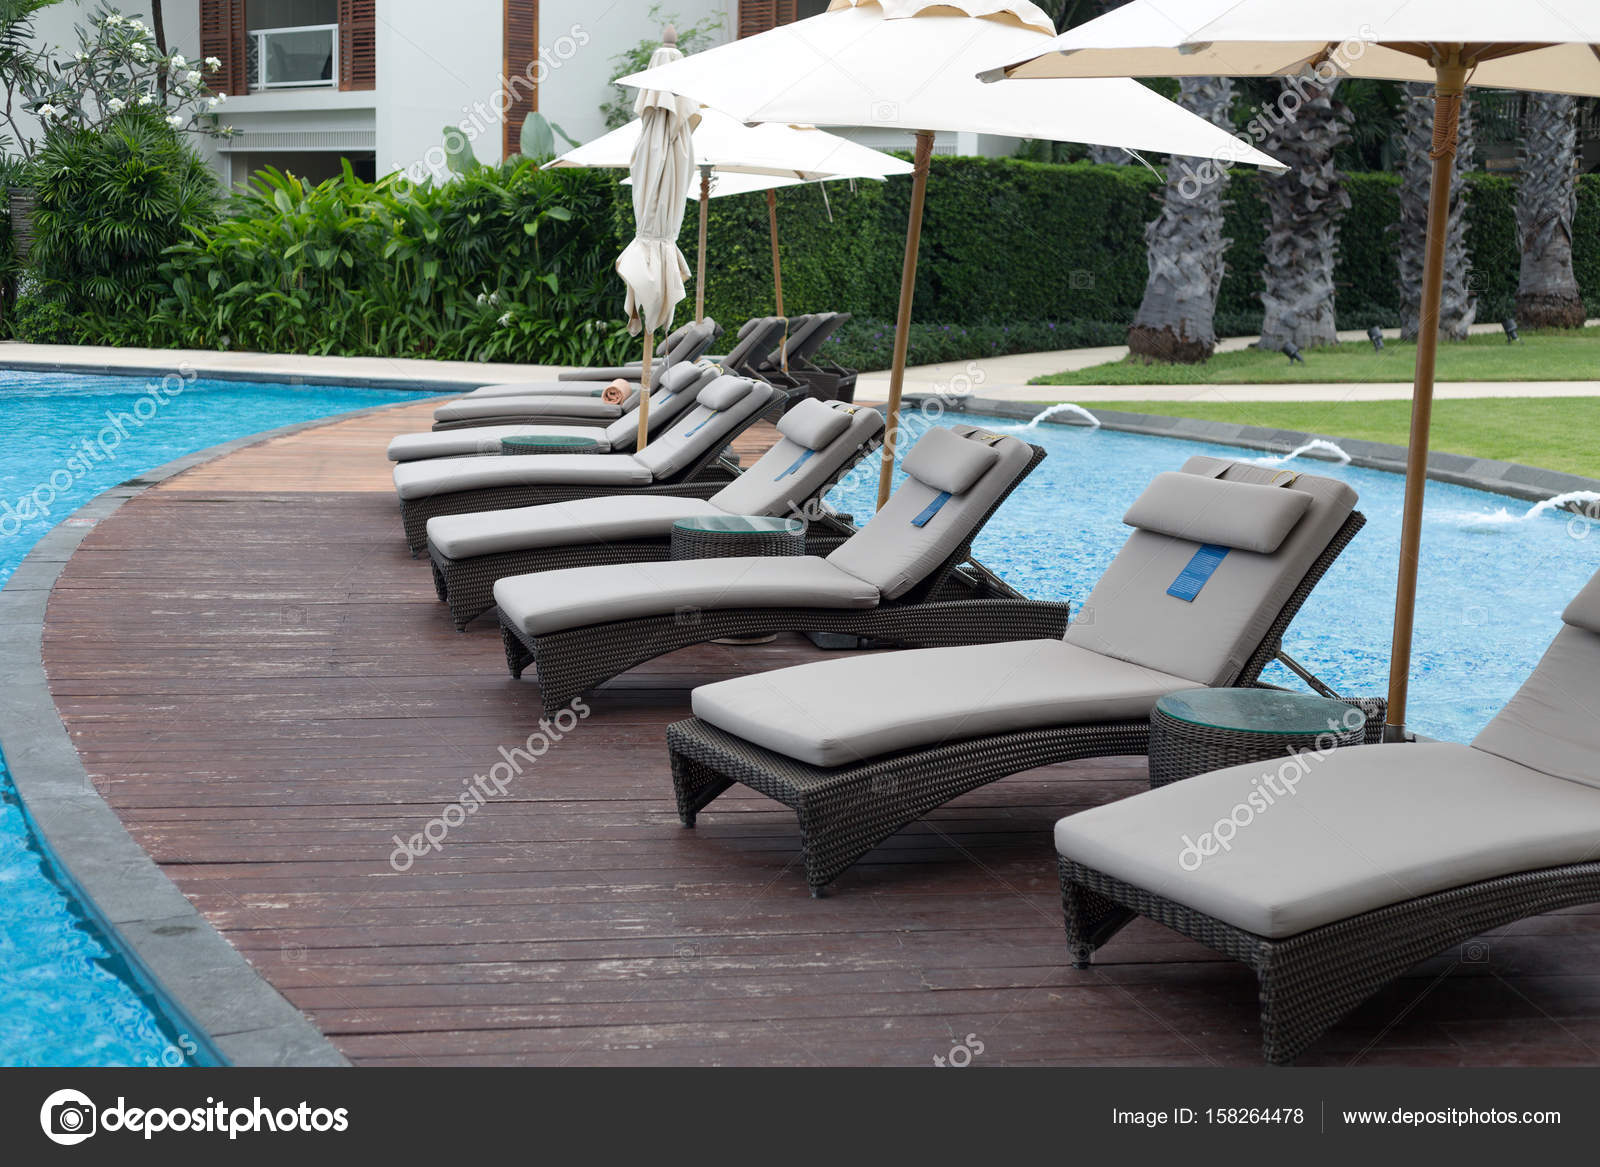 Swimming pool with sun shelters — Stock Photo © Ruslan #158264478